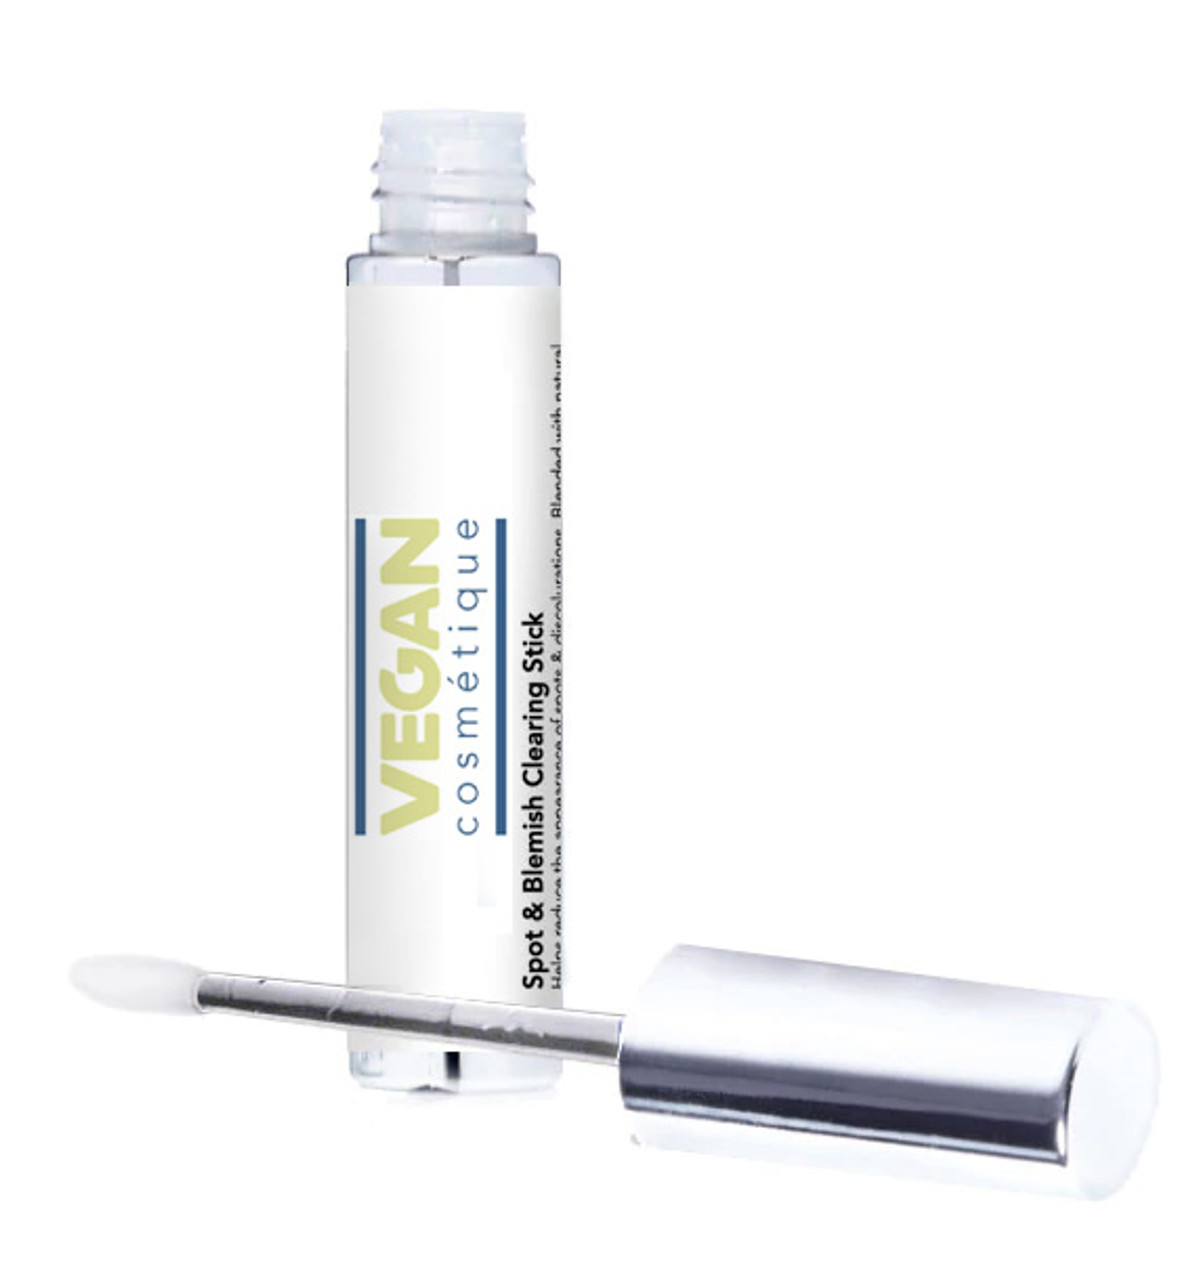 Vegan Cosmetics - Spot & Blemish Clearing Stick For Acne & Skin Discolourations